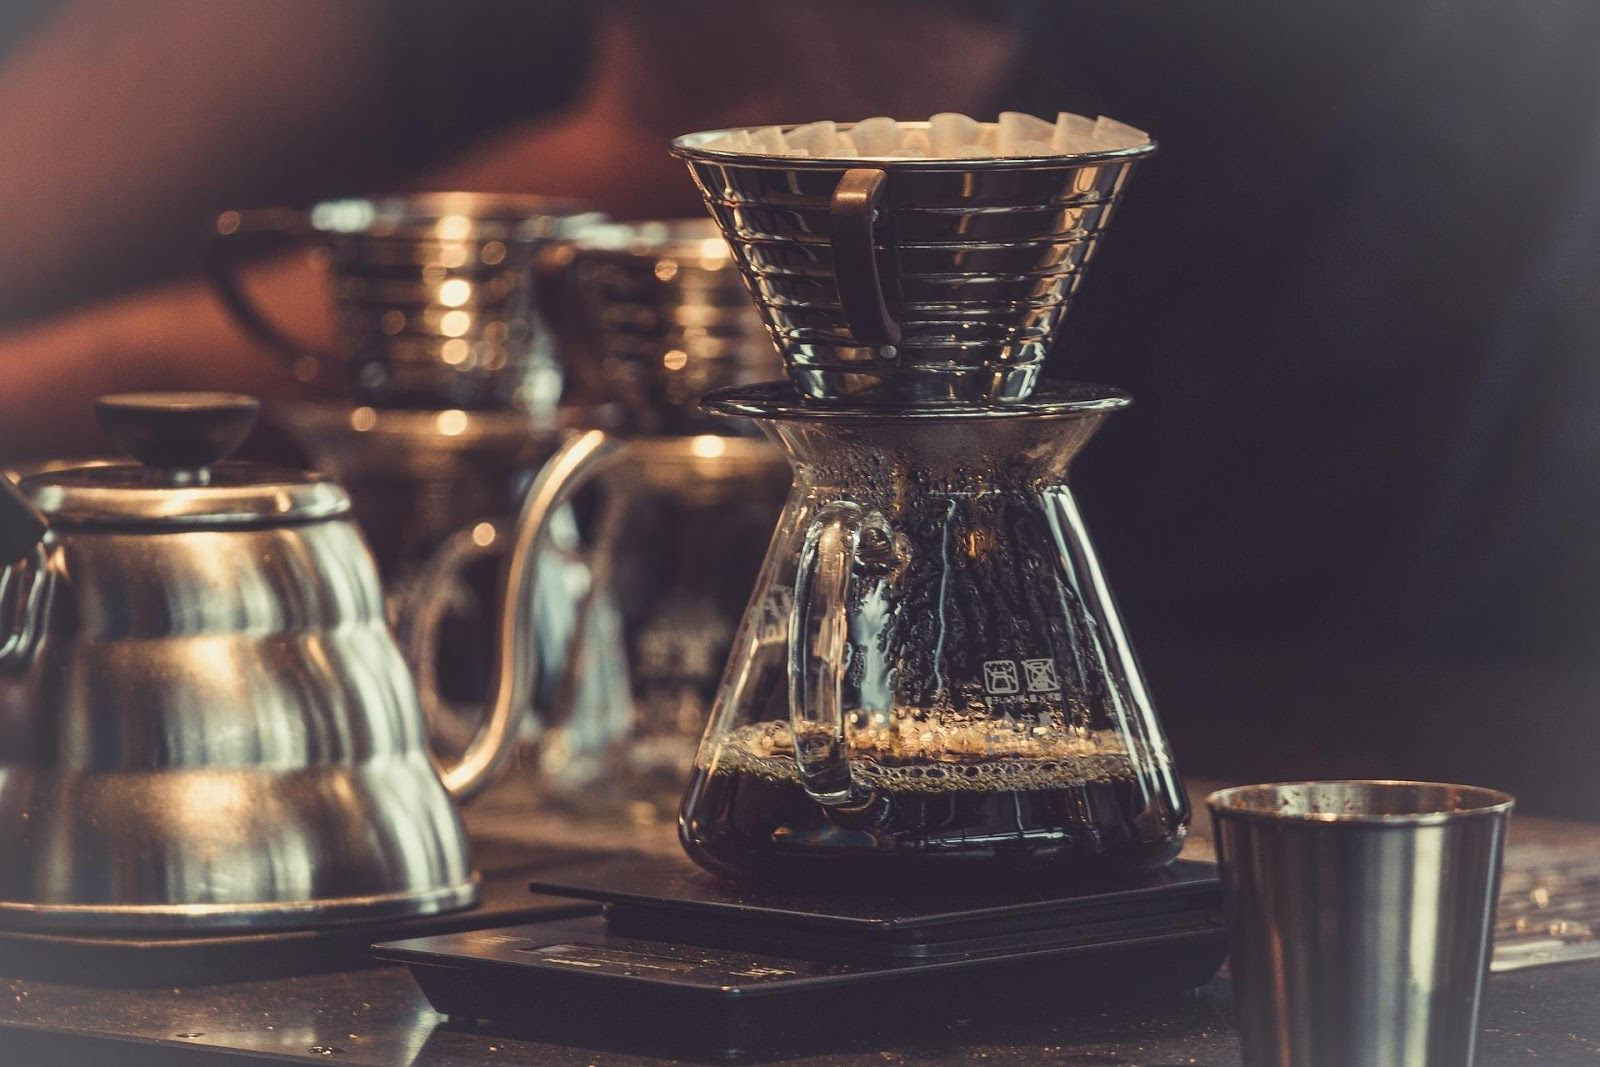 Adding filter coffee to your menu